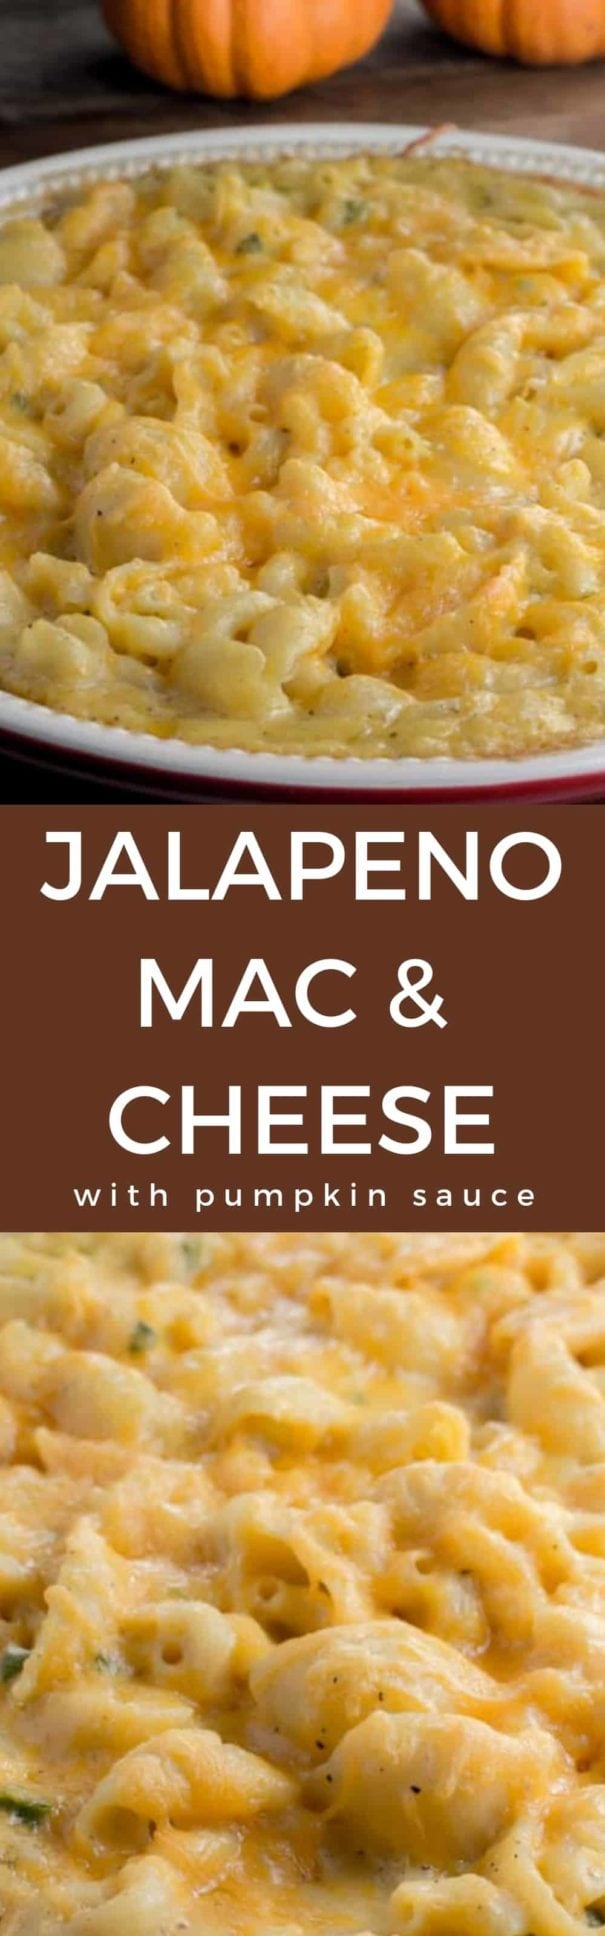 This extra cheesy Jalapeño Mac and Cheese with Pumpkin is a creamy, slightly spicy dish that your family will love! It's pure comfort food, perfect to enjoy this fall season! The ultimate macaroni and cheese recipe!